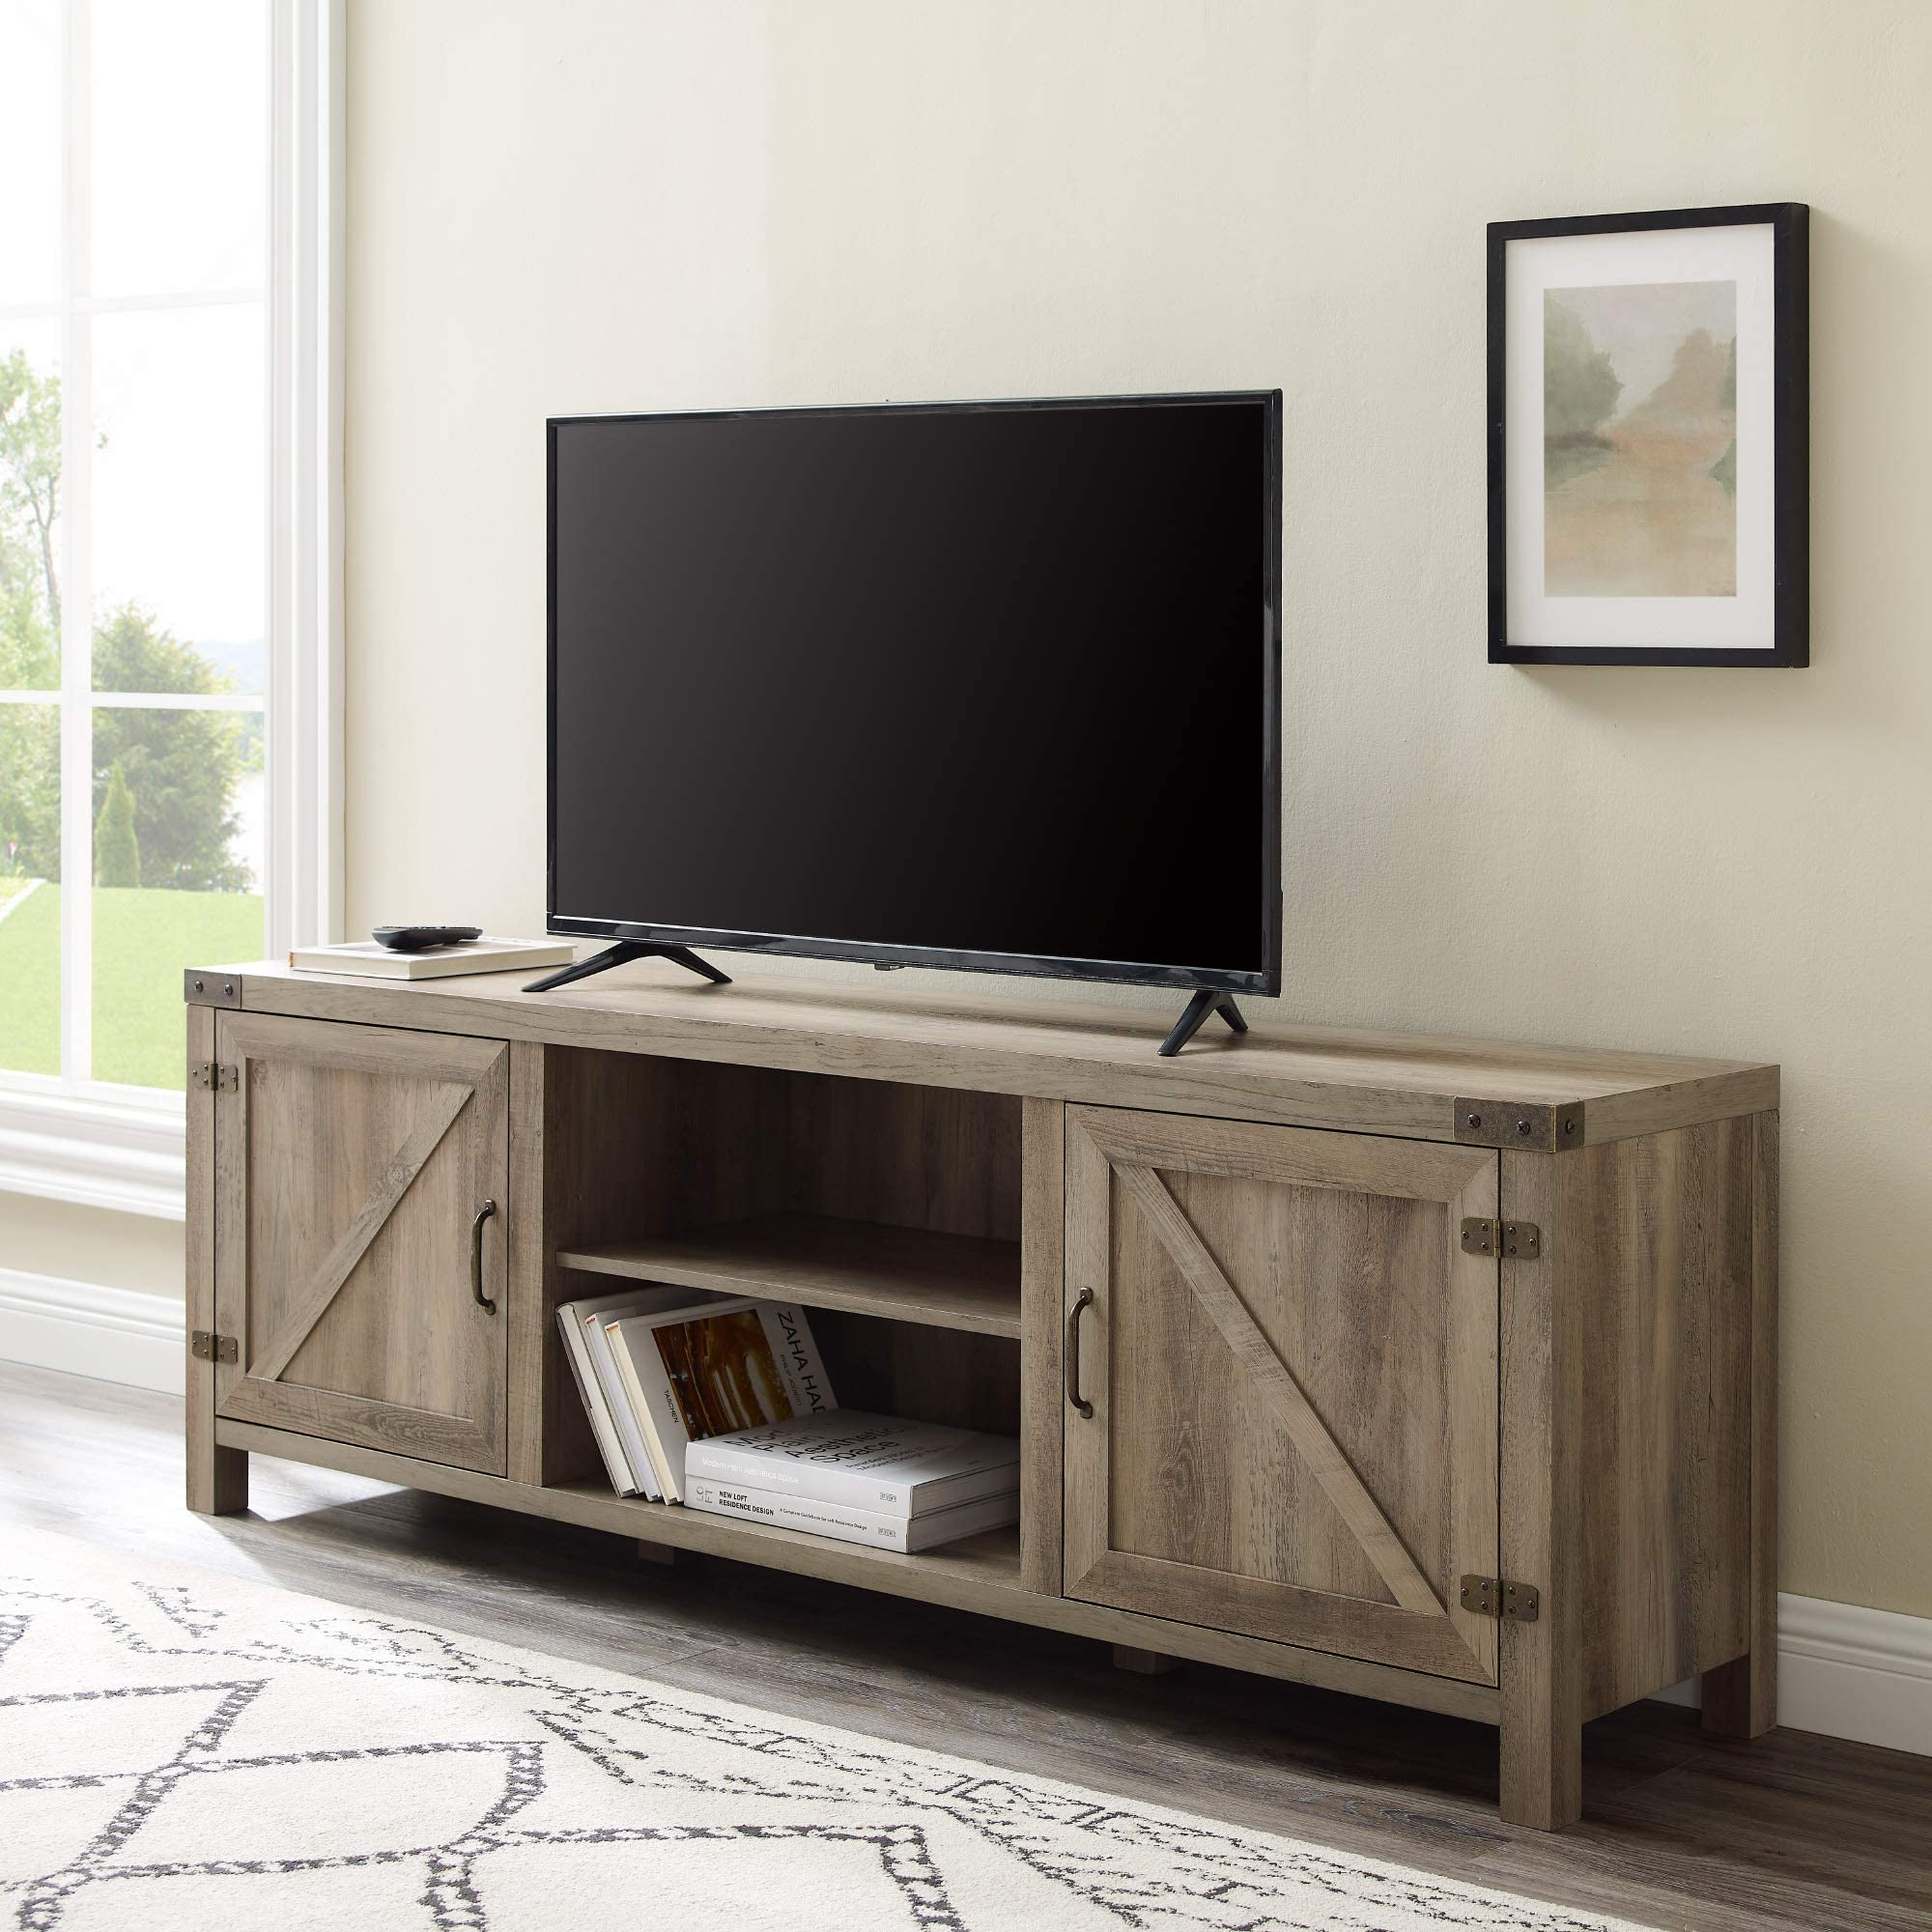 Rustic Solid Reclaimed wood 80 inch TV stand Media Center  Sideboard with 4 doors and shelves